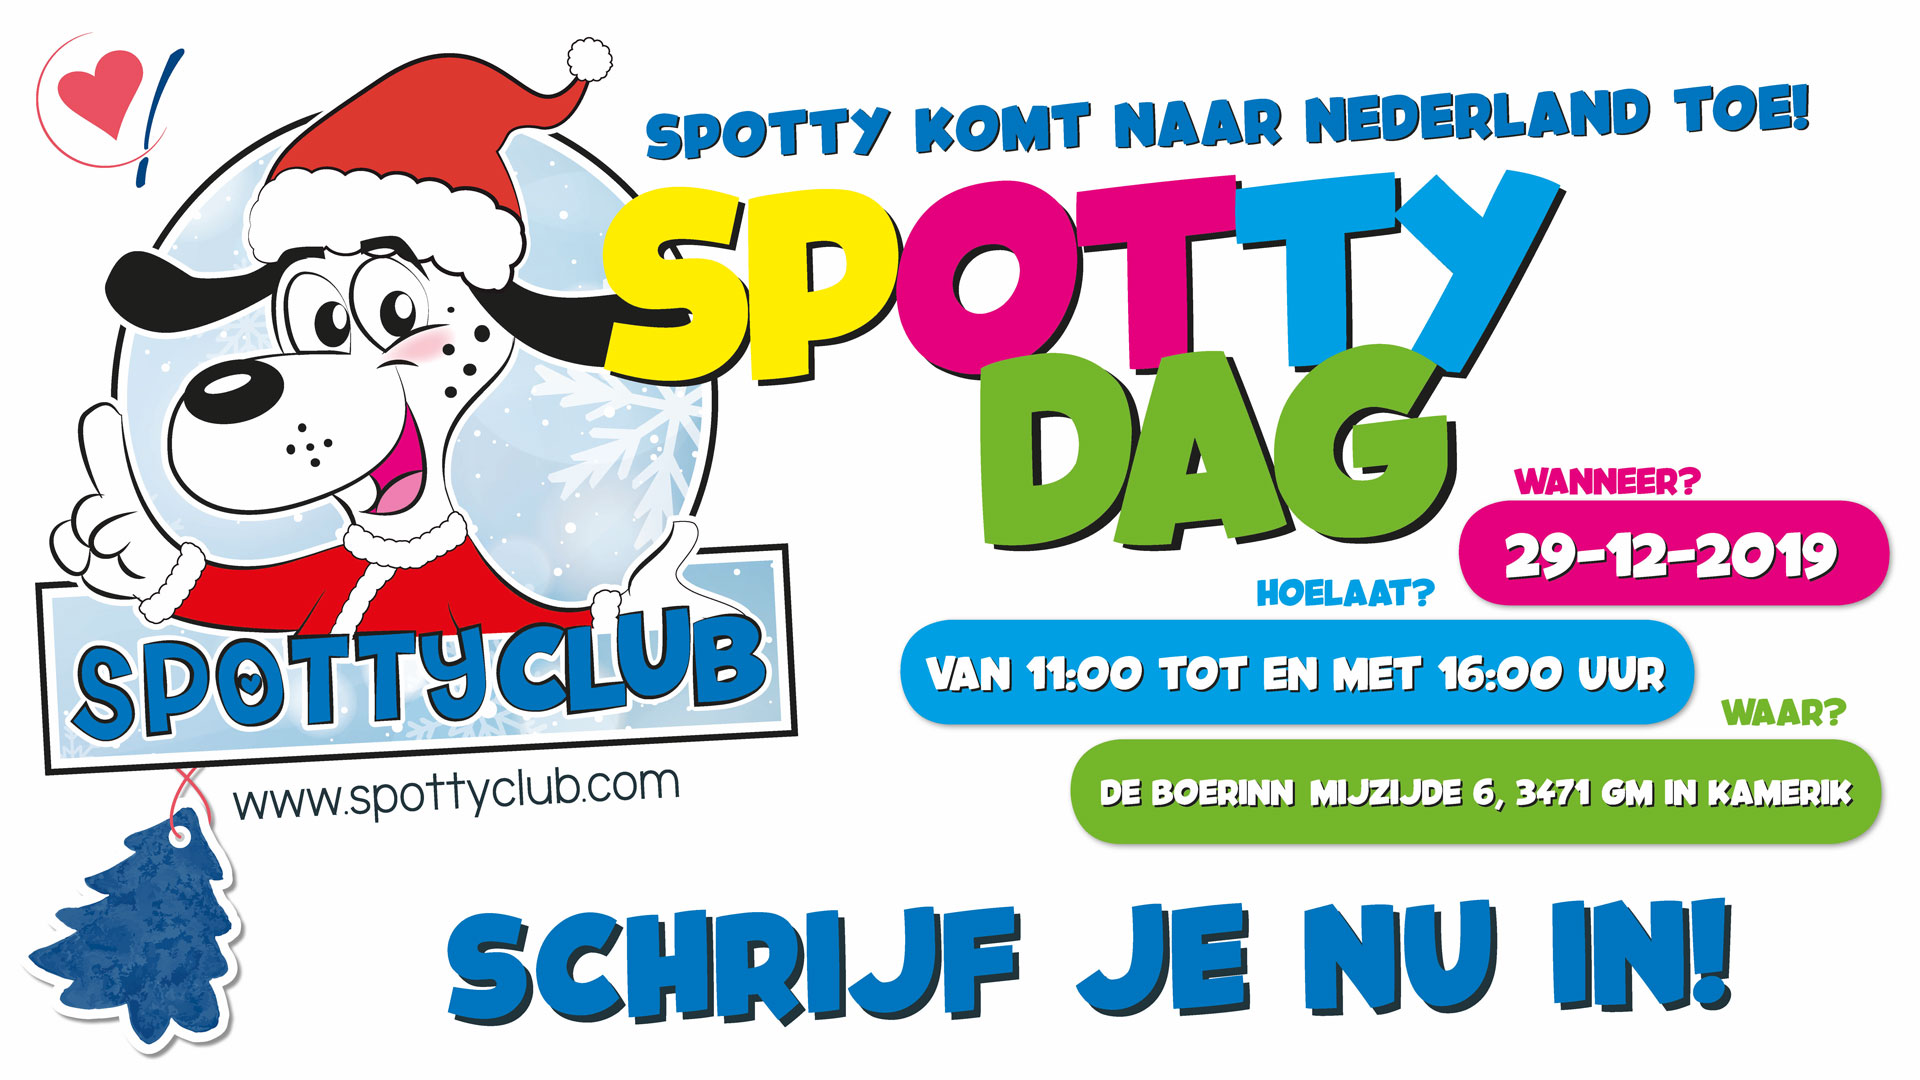 SPOTTY DAY | 29 December 2019 - 'de Boerinn' in Kamerik - Utrecht